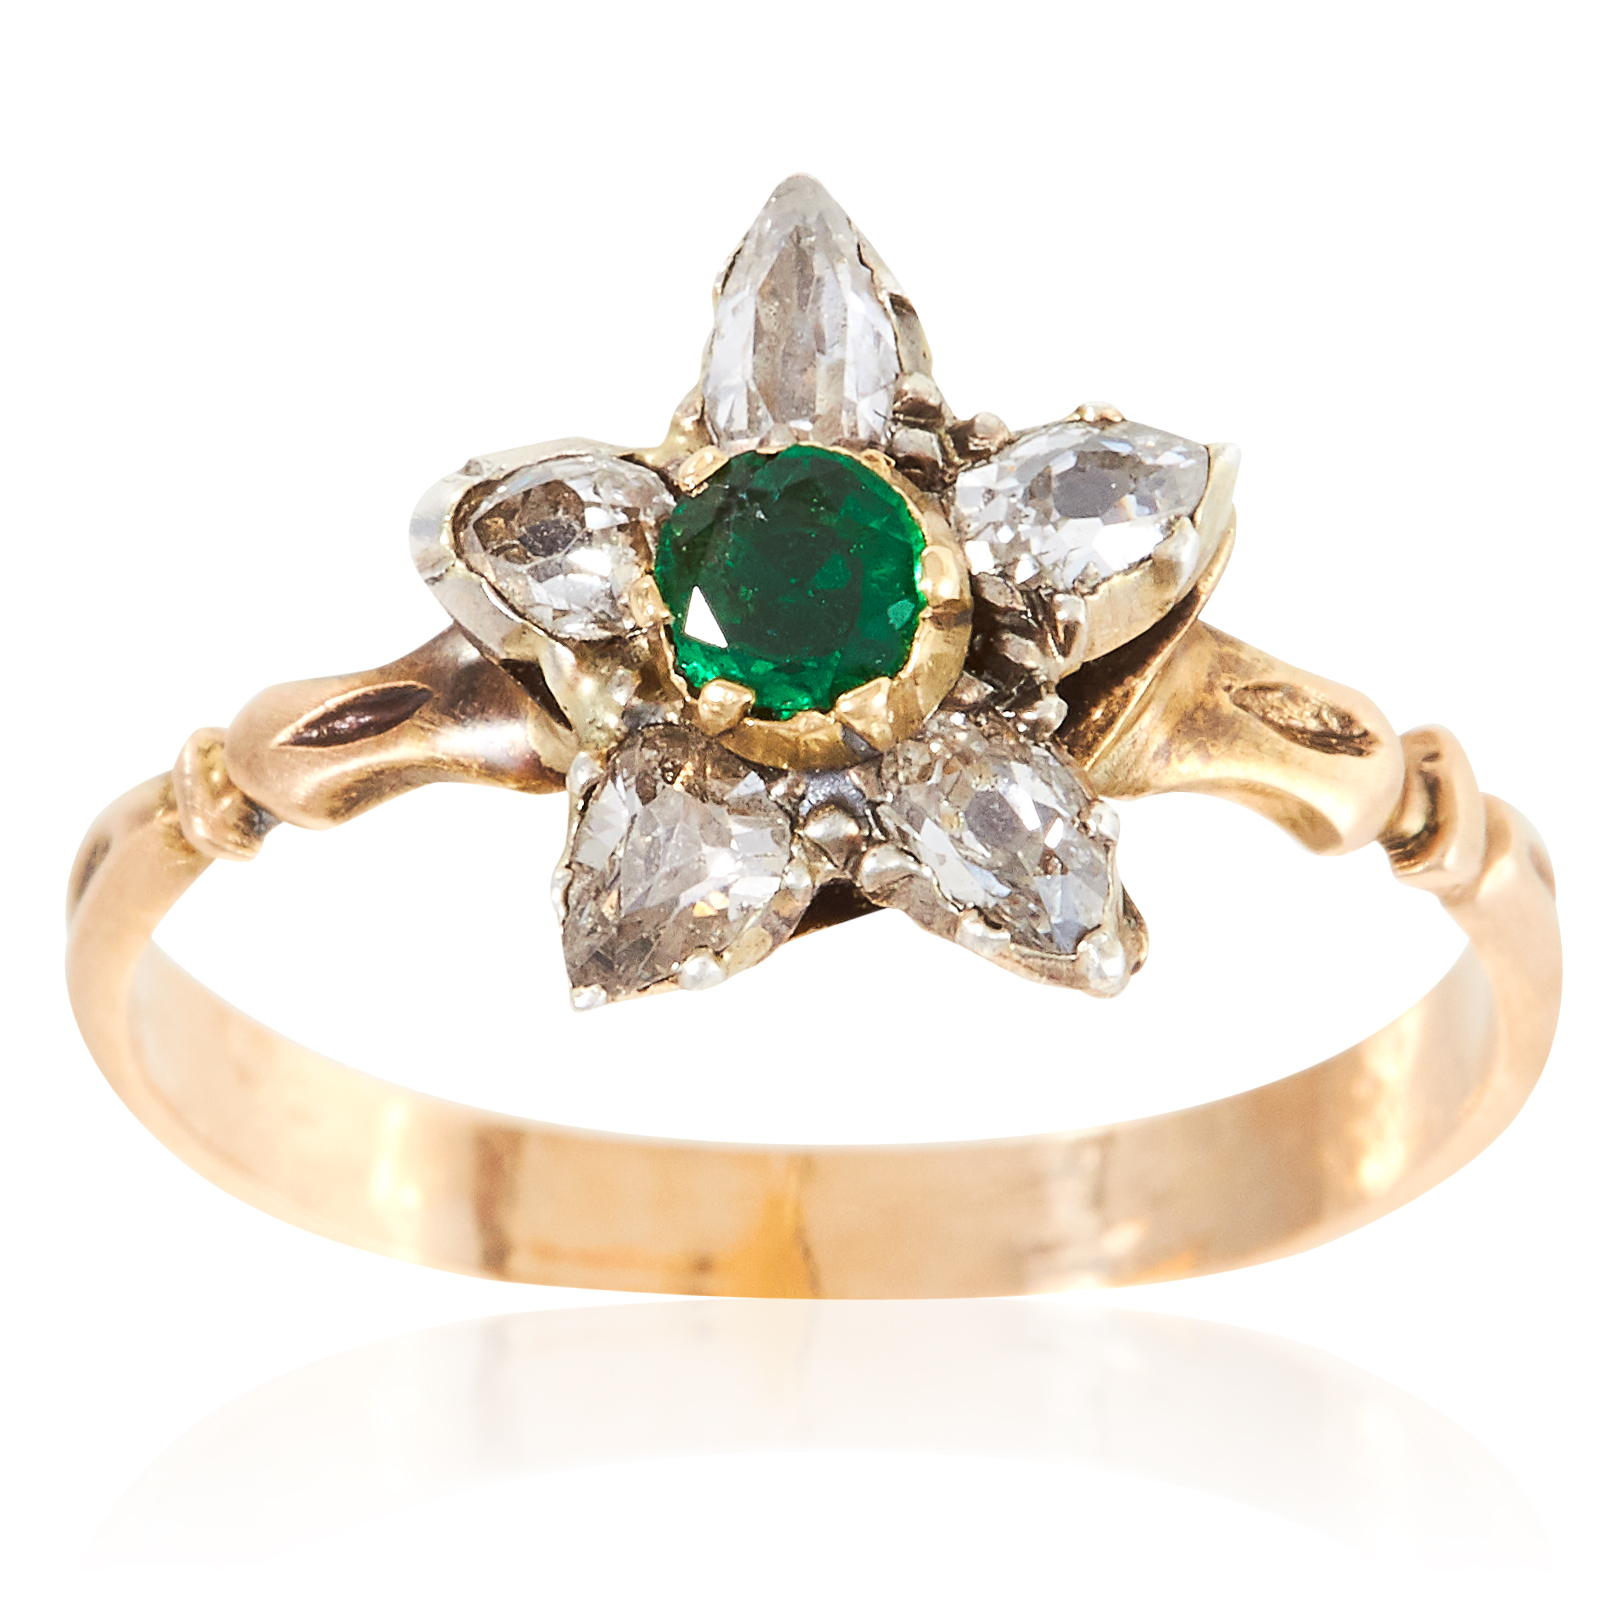 Los 58 - AN ANTIQUE EMERALD AND DIAMOND RING in high carat yellow gold, depicting a flower set with a round